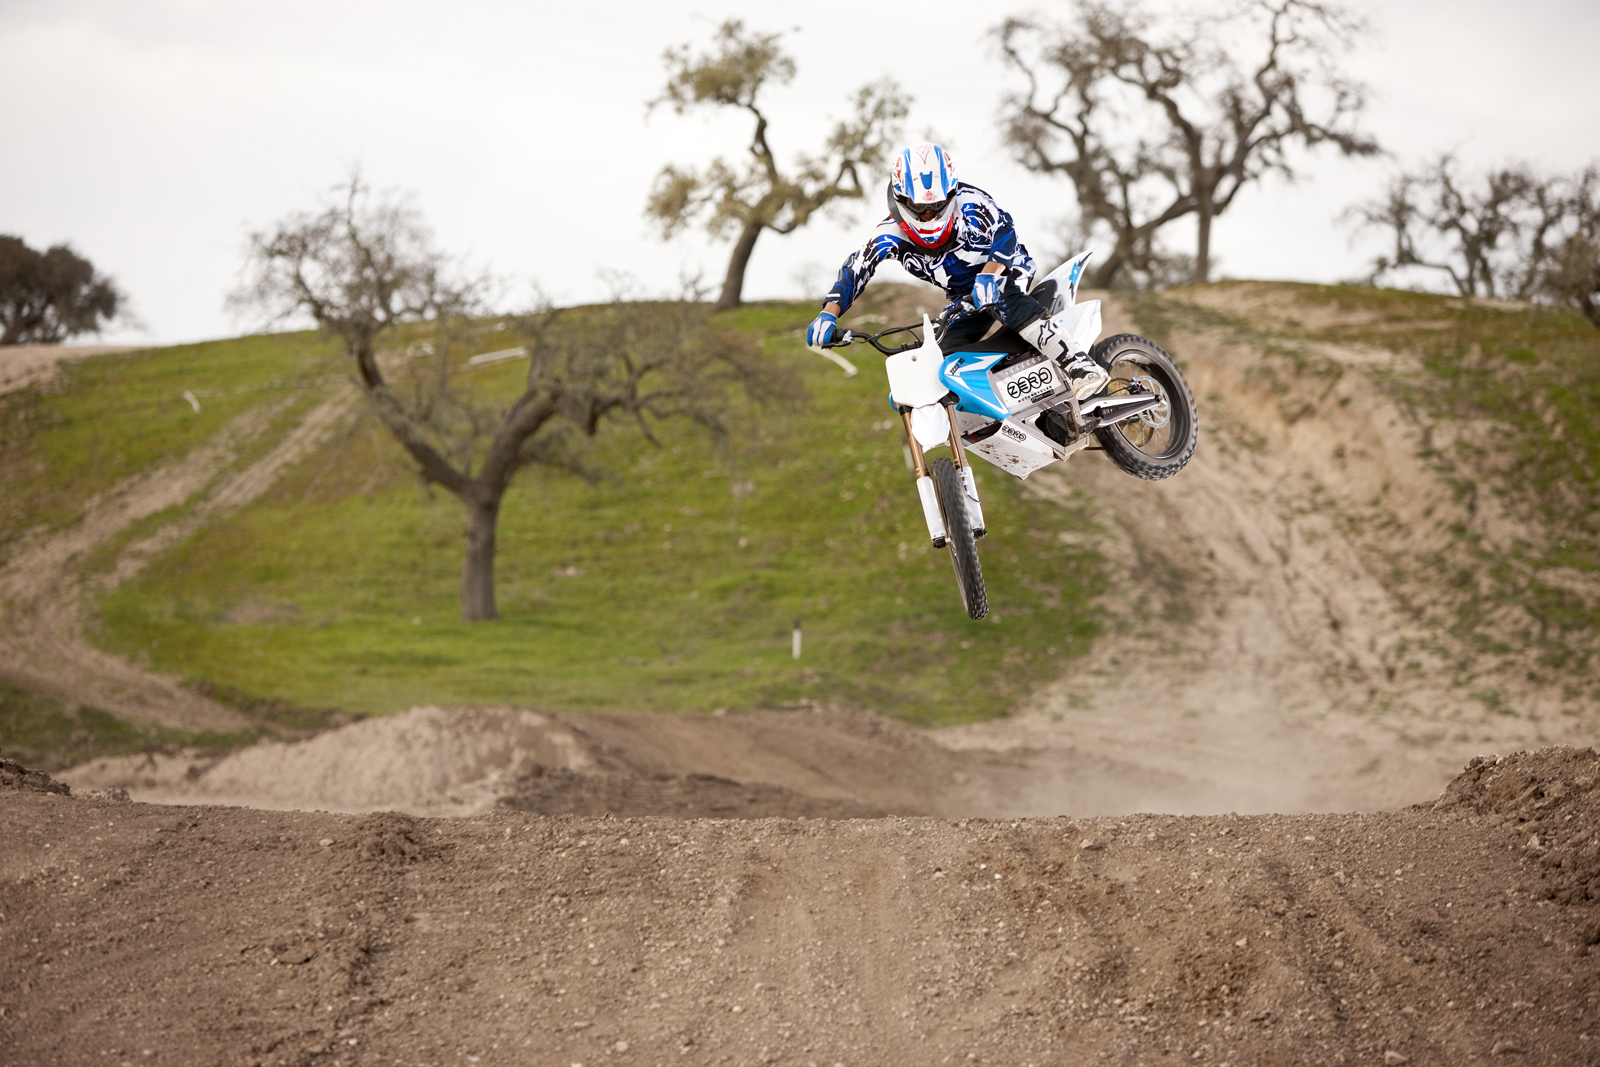 2010 Zero MX Electric Motorcycle: Zaca Station - Blue Whip over Double